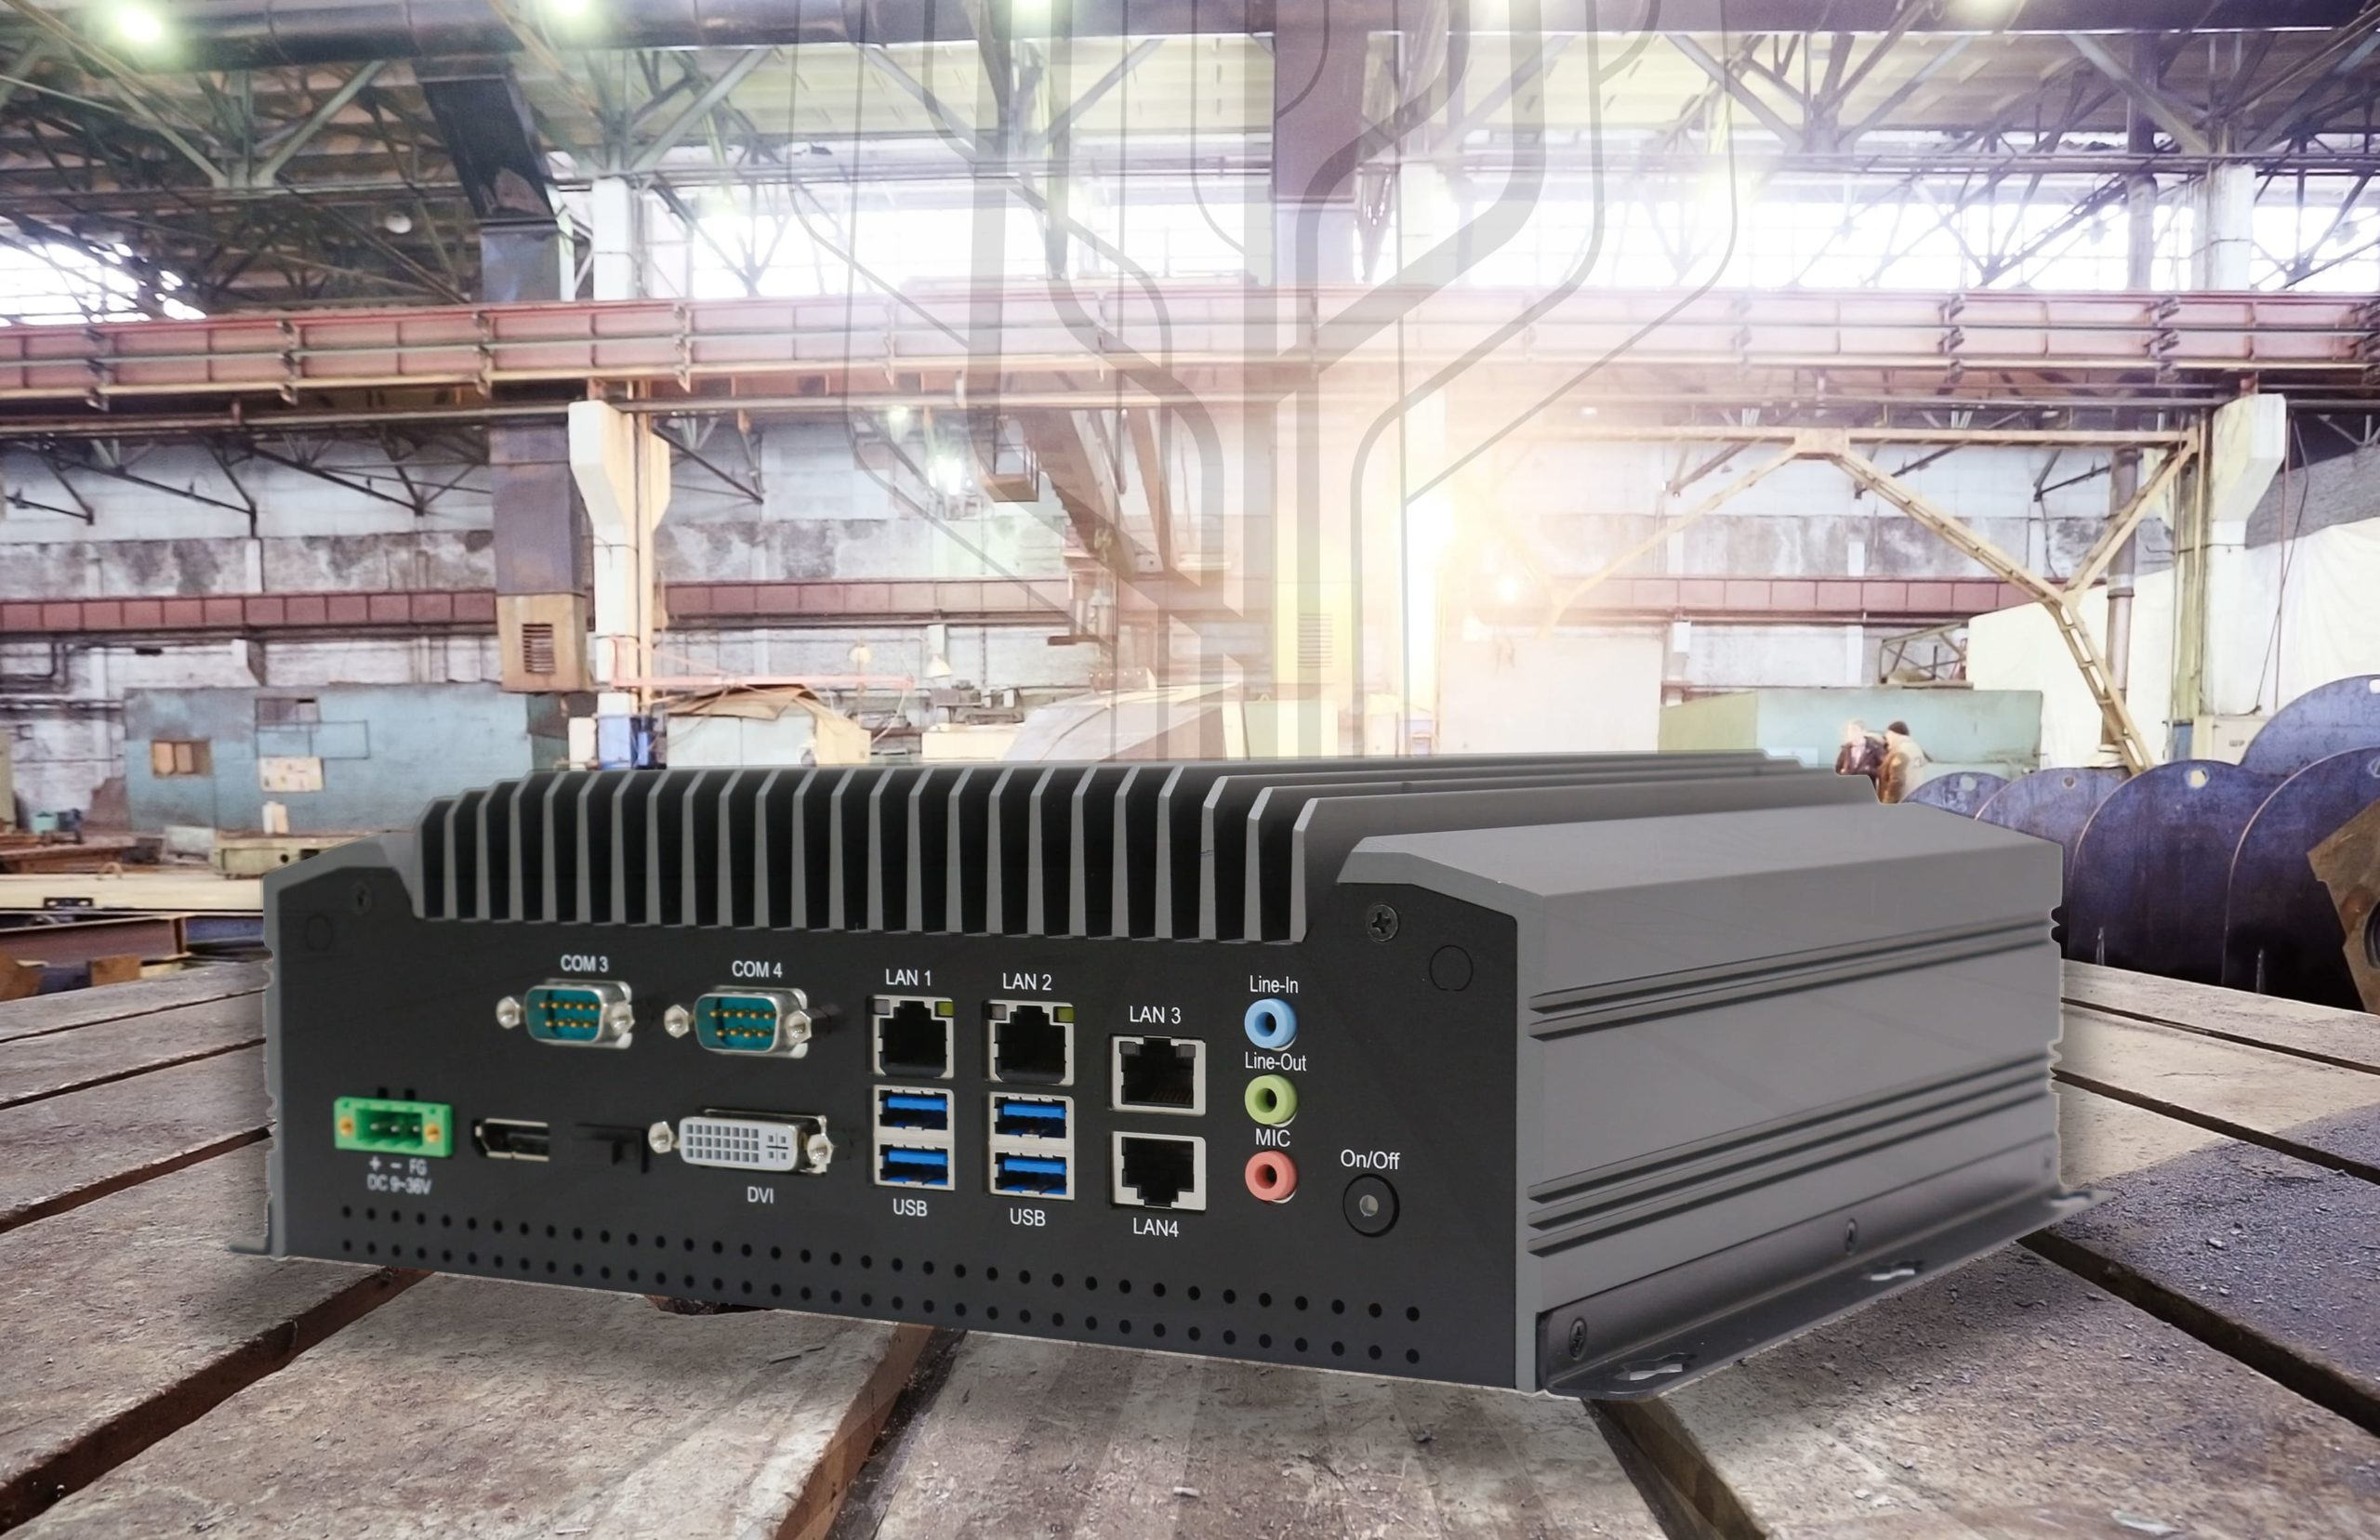 Teguar fanless box PC on display in a factory